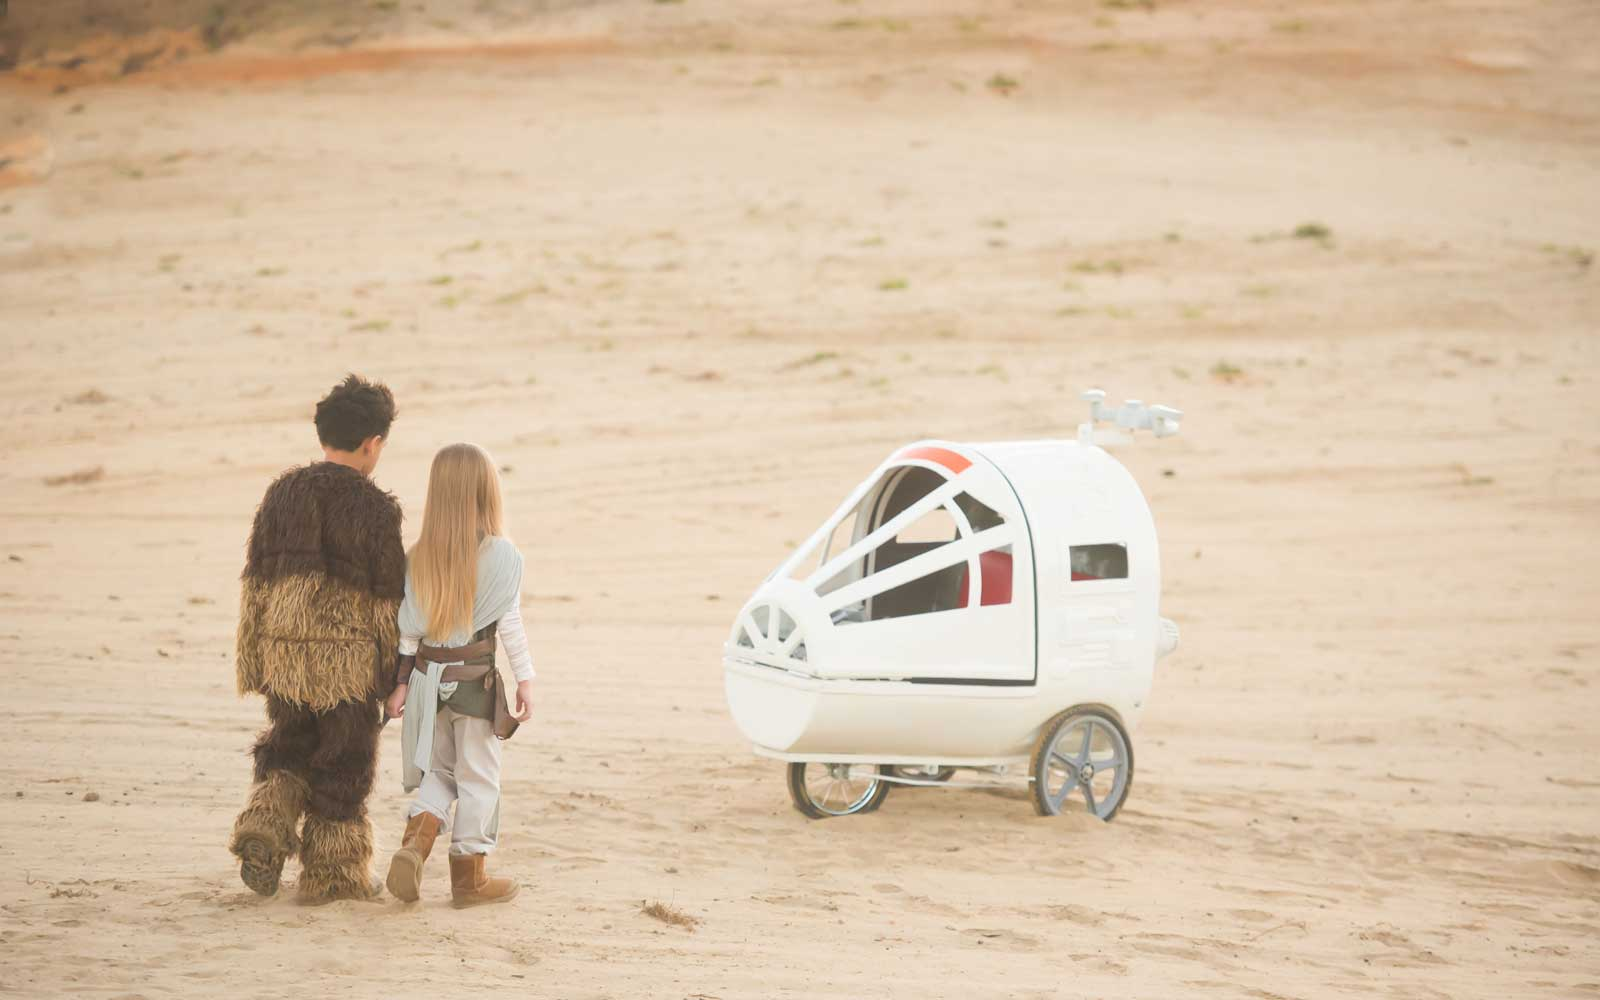 You Can Now Rent a Spaceship Stroller for Your Next Walt Disney World Trip